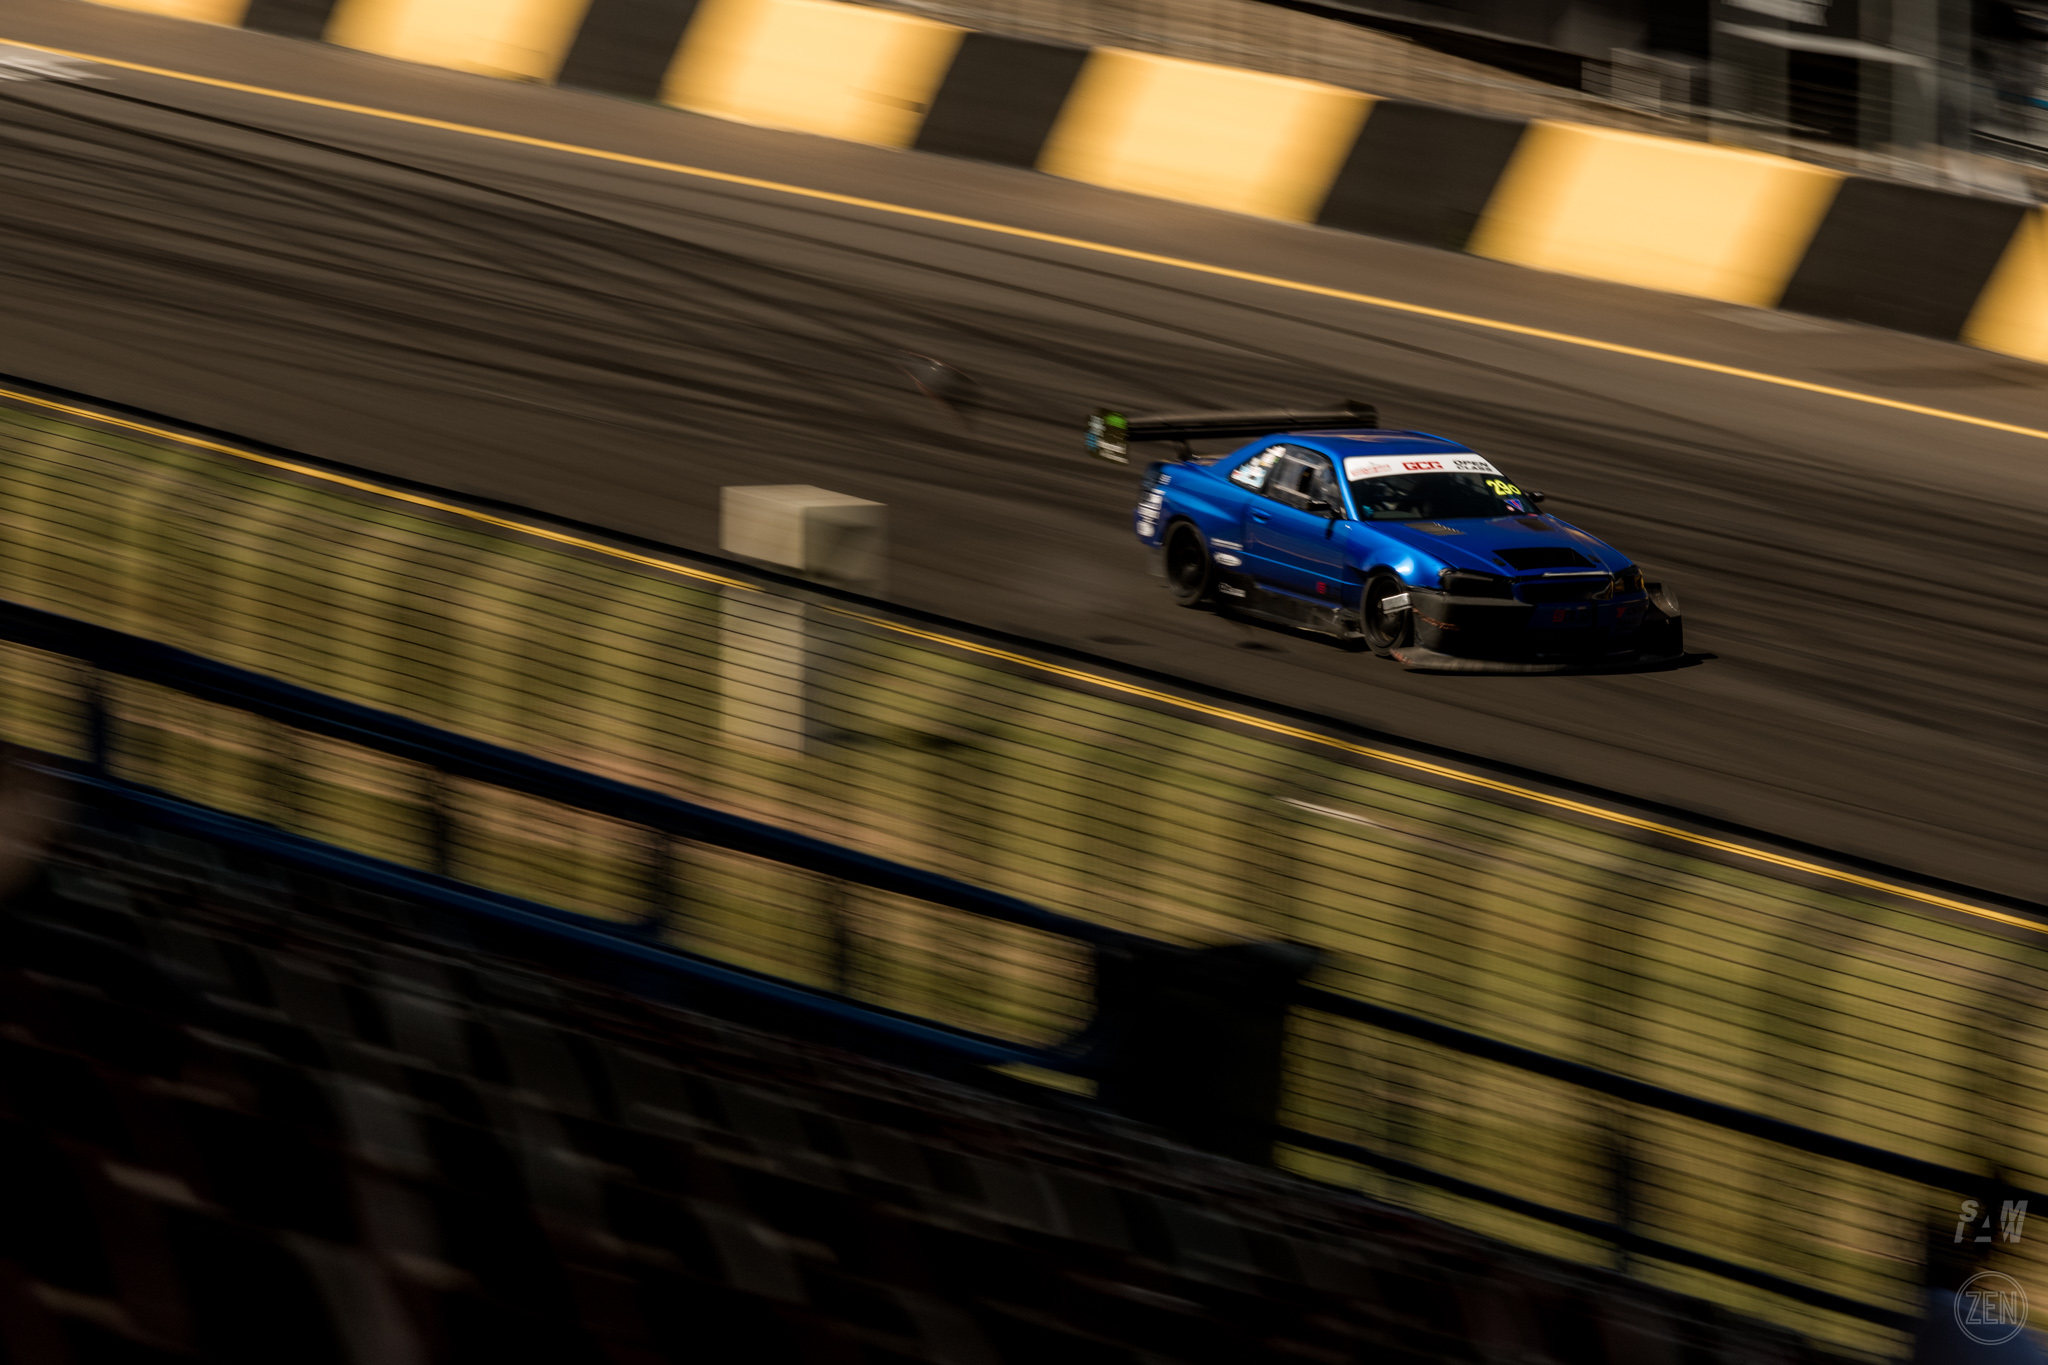 2019-10-19 - WTAC Day 2 008